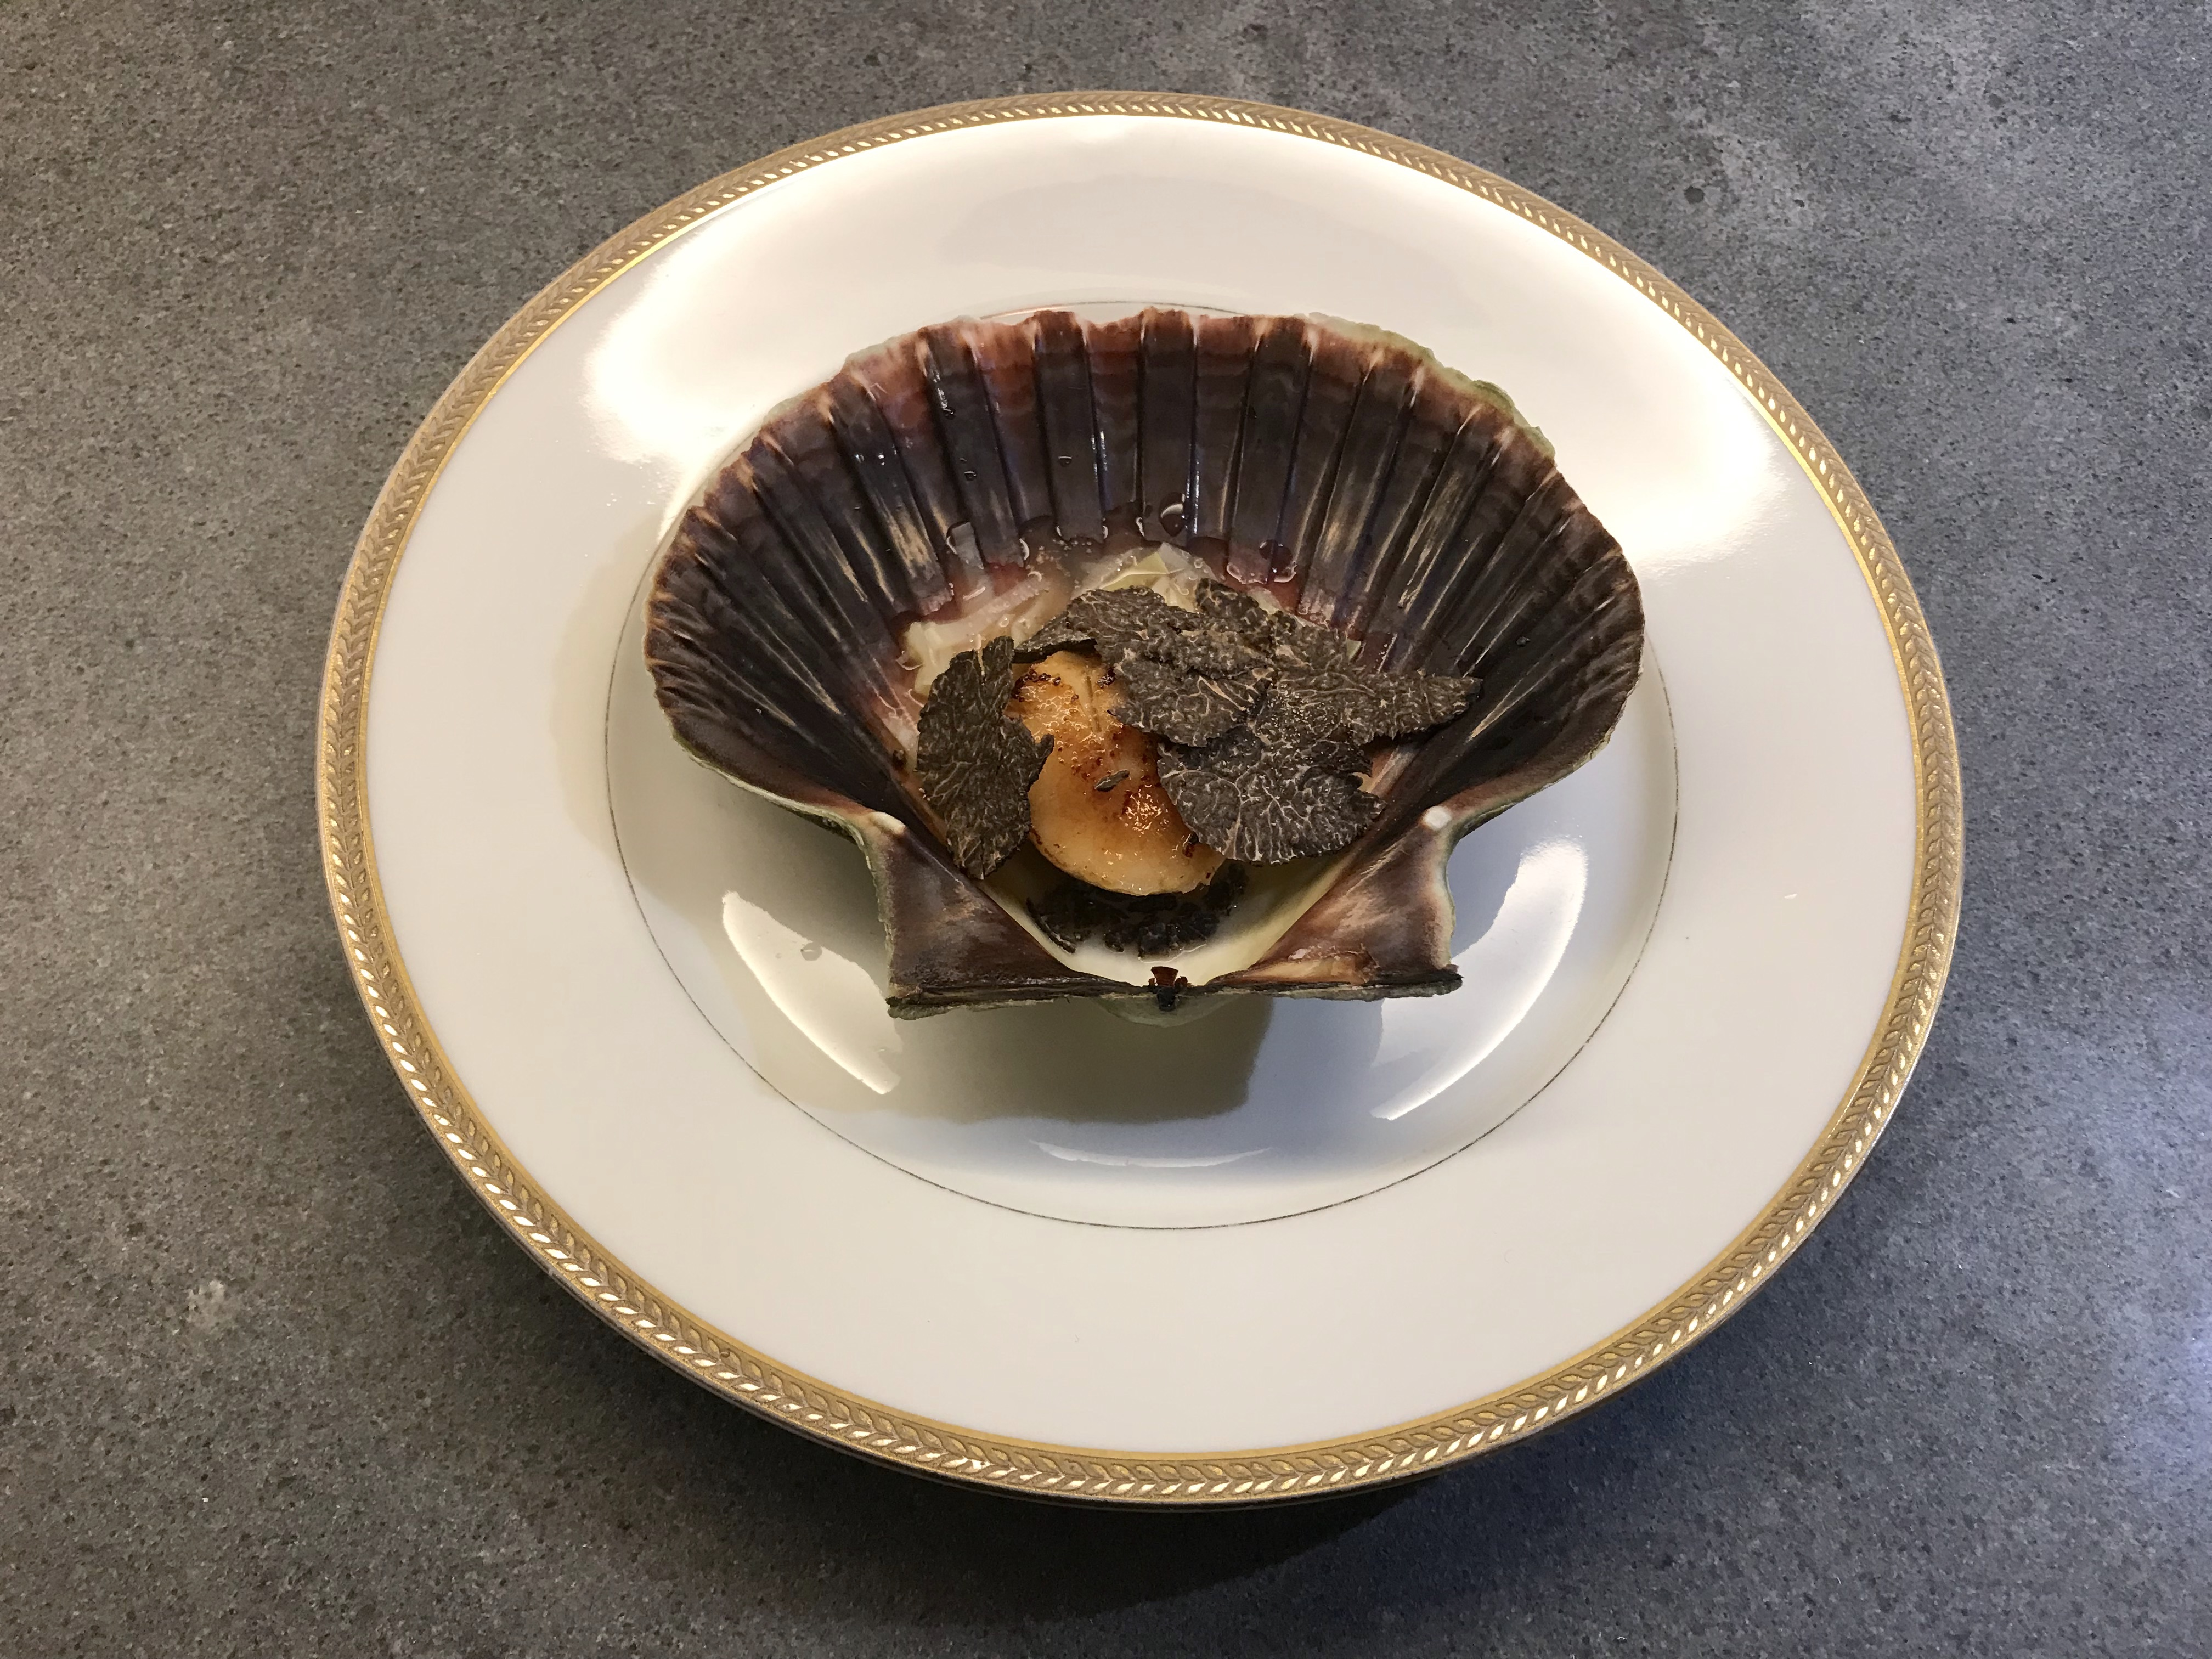 Scallops or Coqcuilles Saint Jacques with Winter Truffle © cadwu